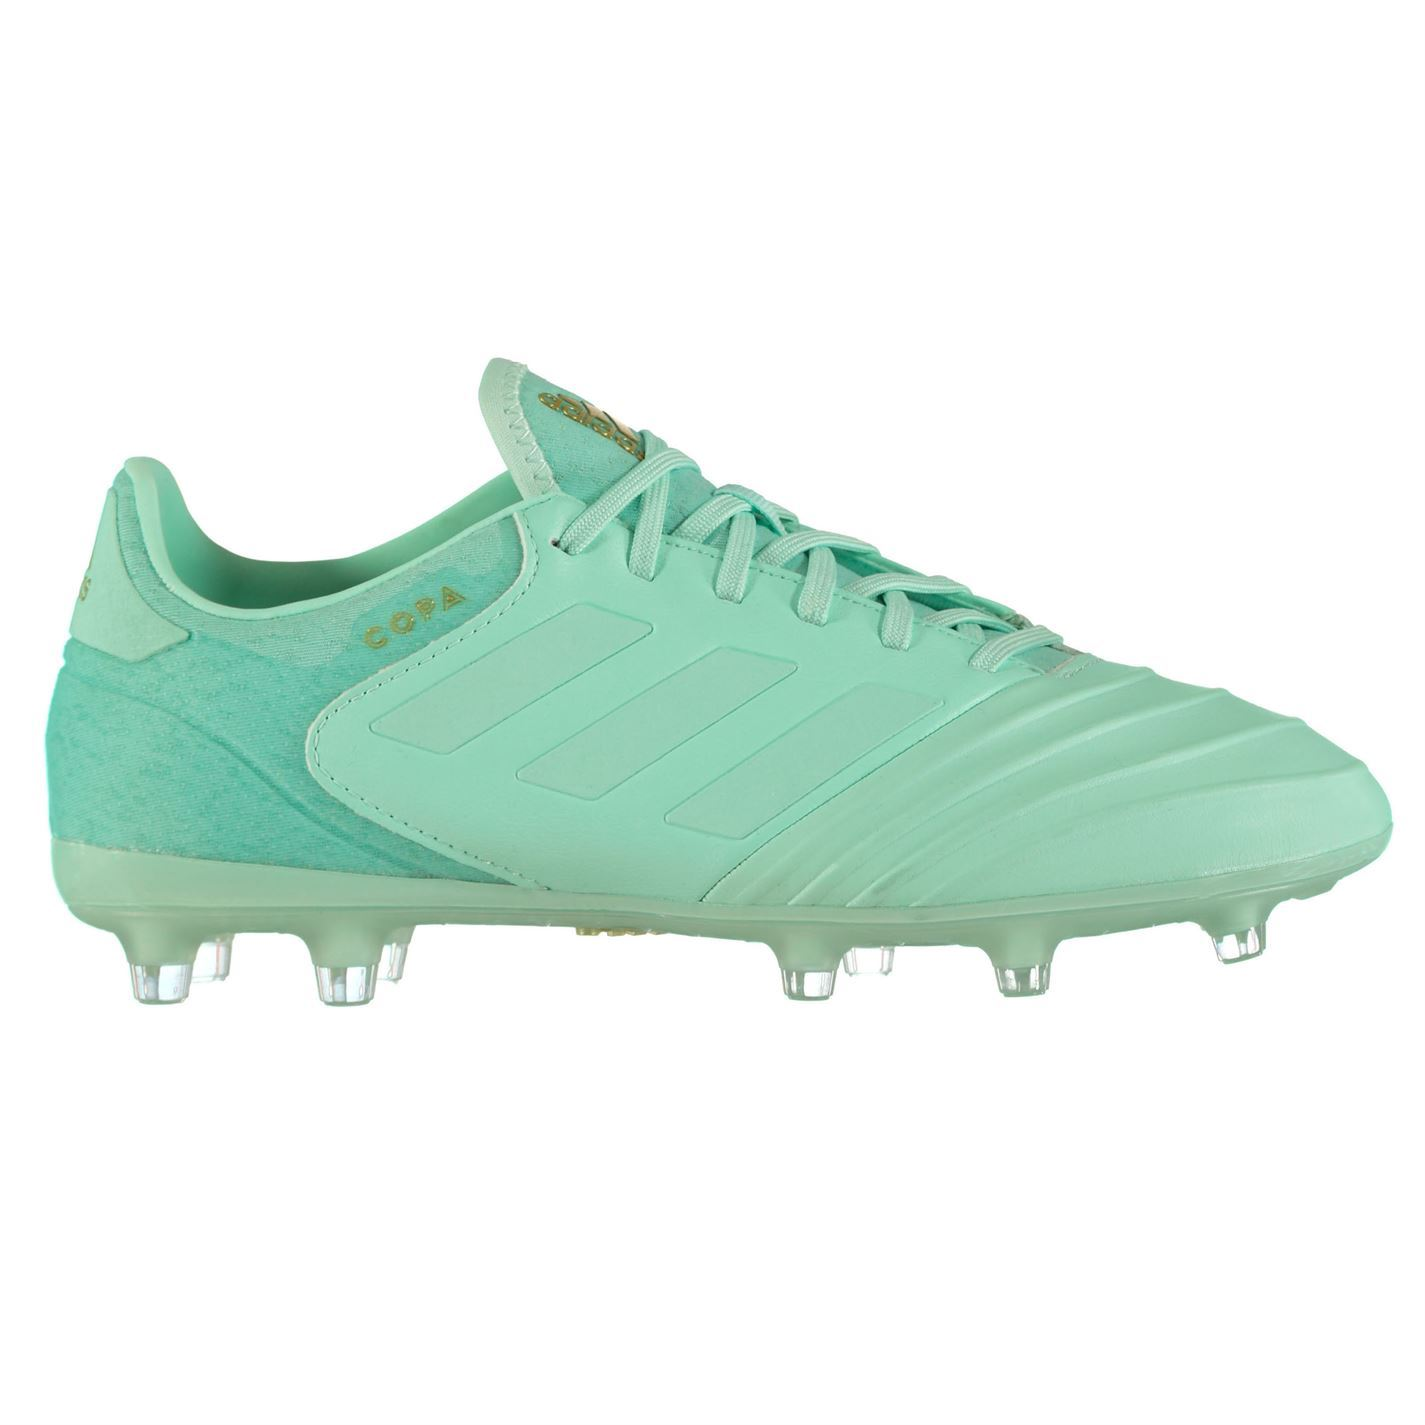 the best attitude d4d02 c7907 ... Adidas Copa 1 8.2 FG Firm terra Football Boots Mens scarpe tacchetti da  calcio